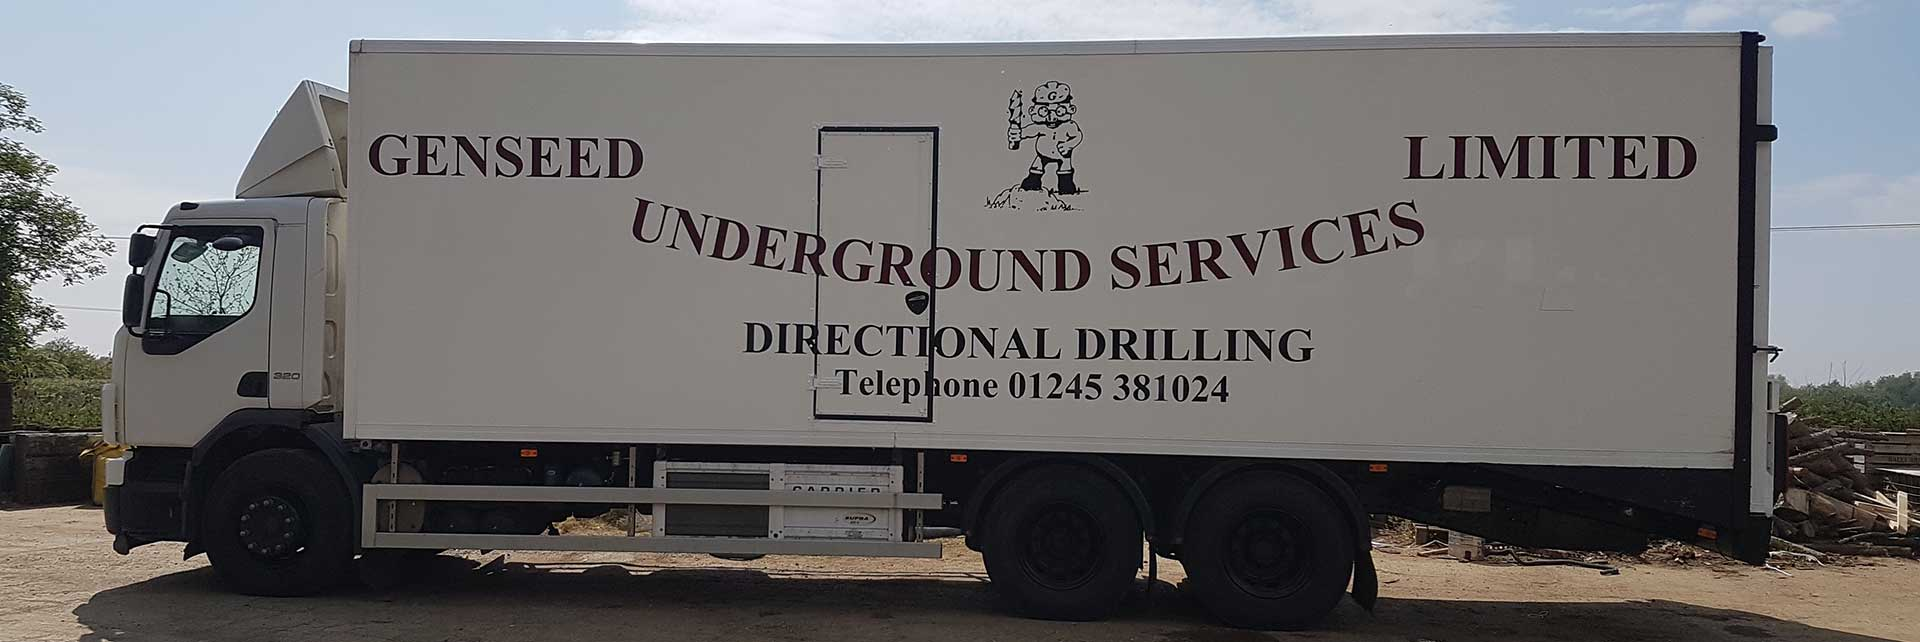 Genseed Underground Services lorry